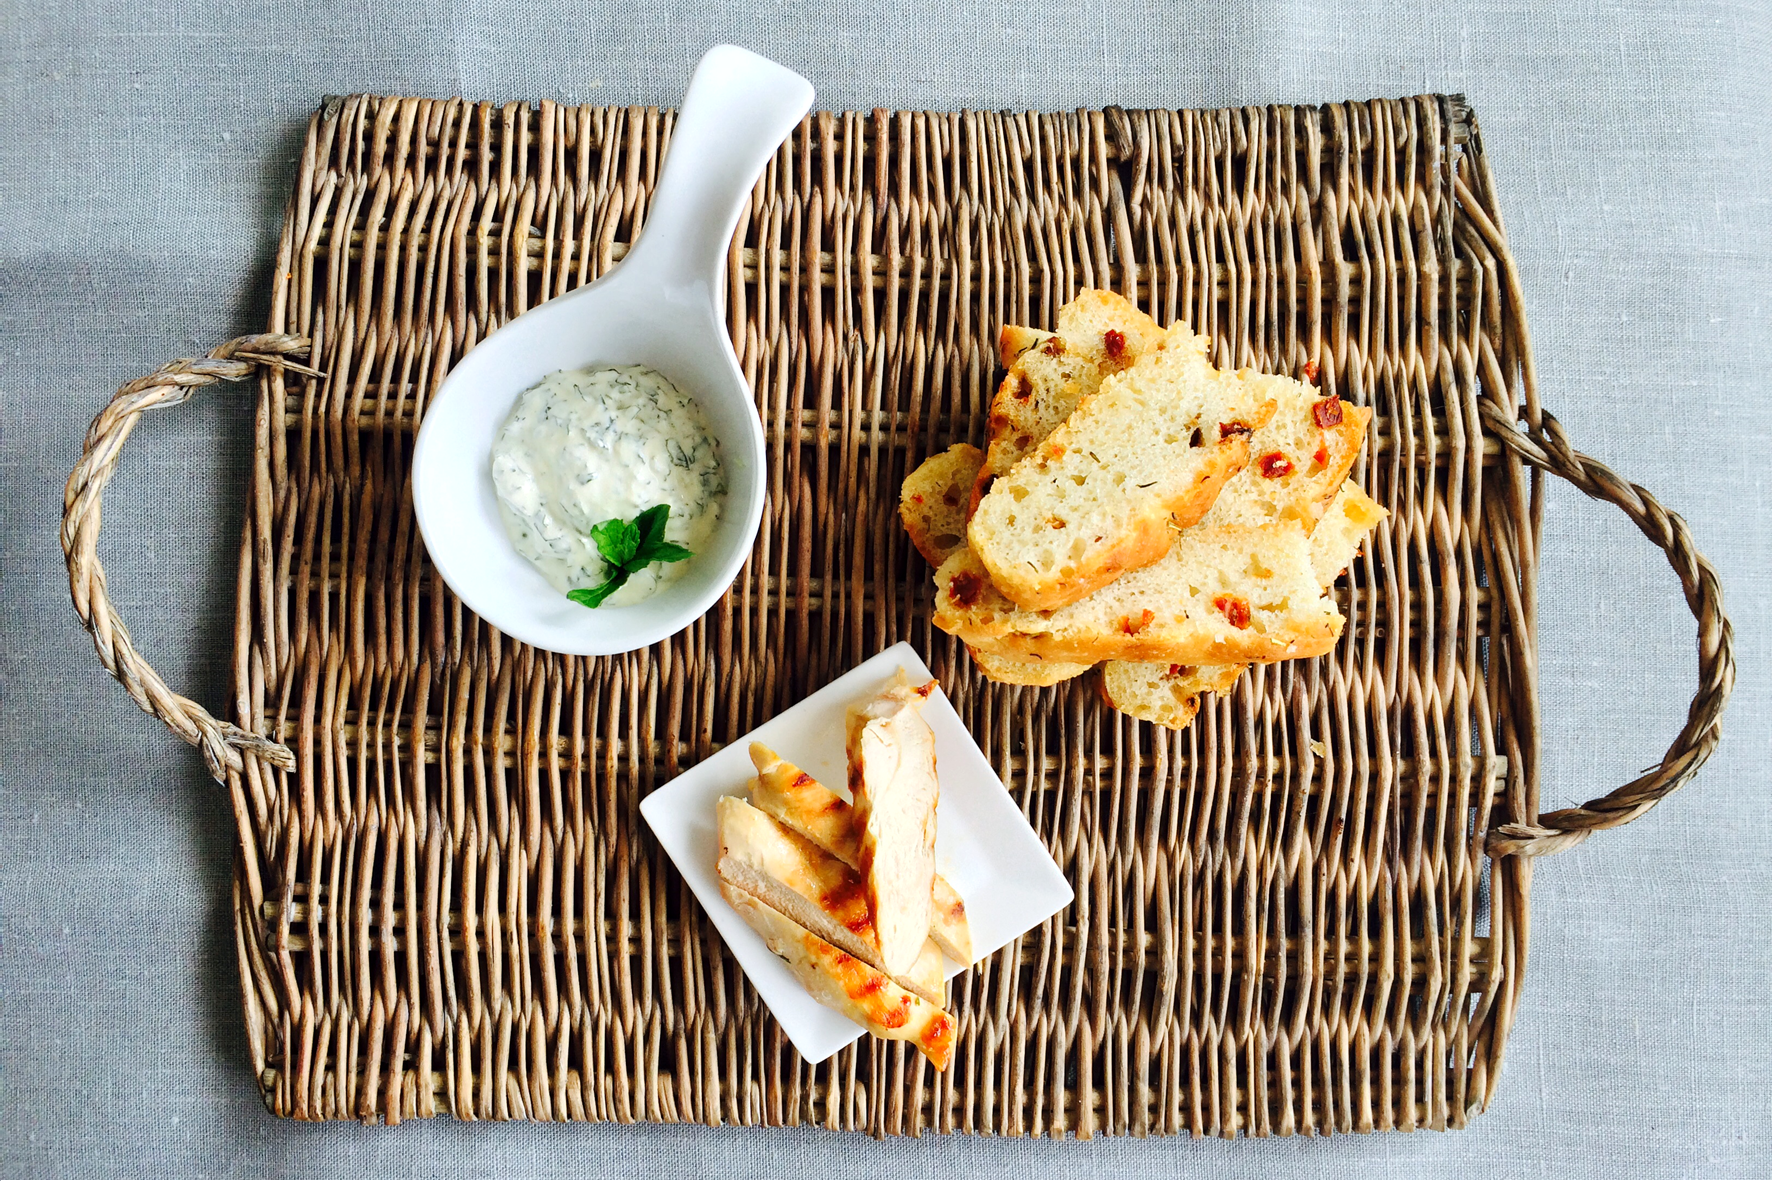 Foccaccia, chicken fingers & mint dip